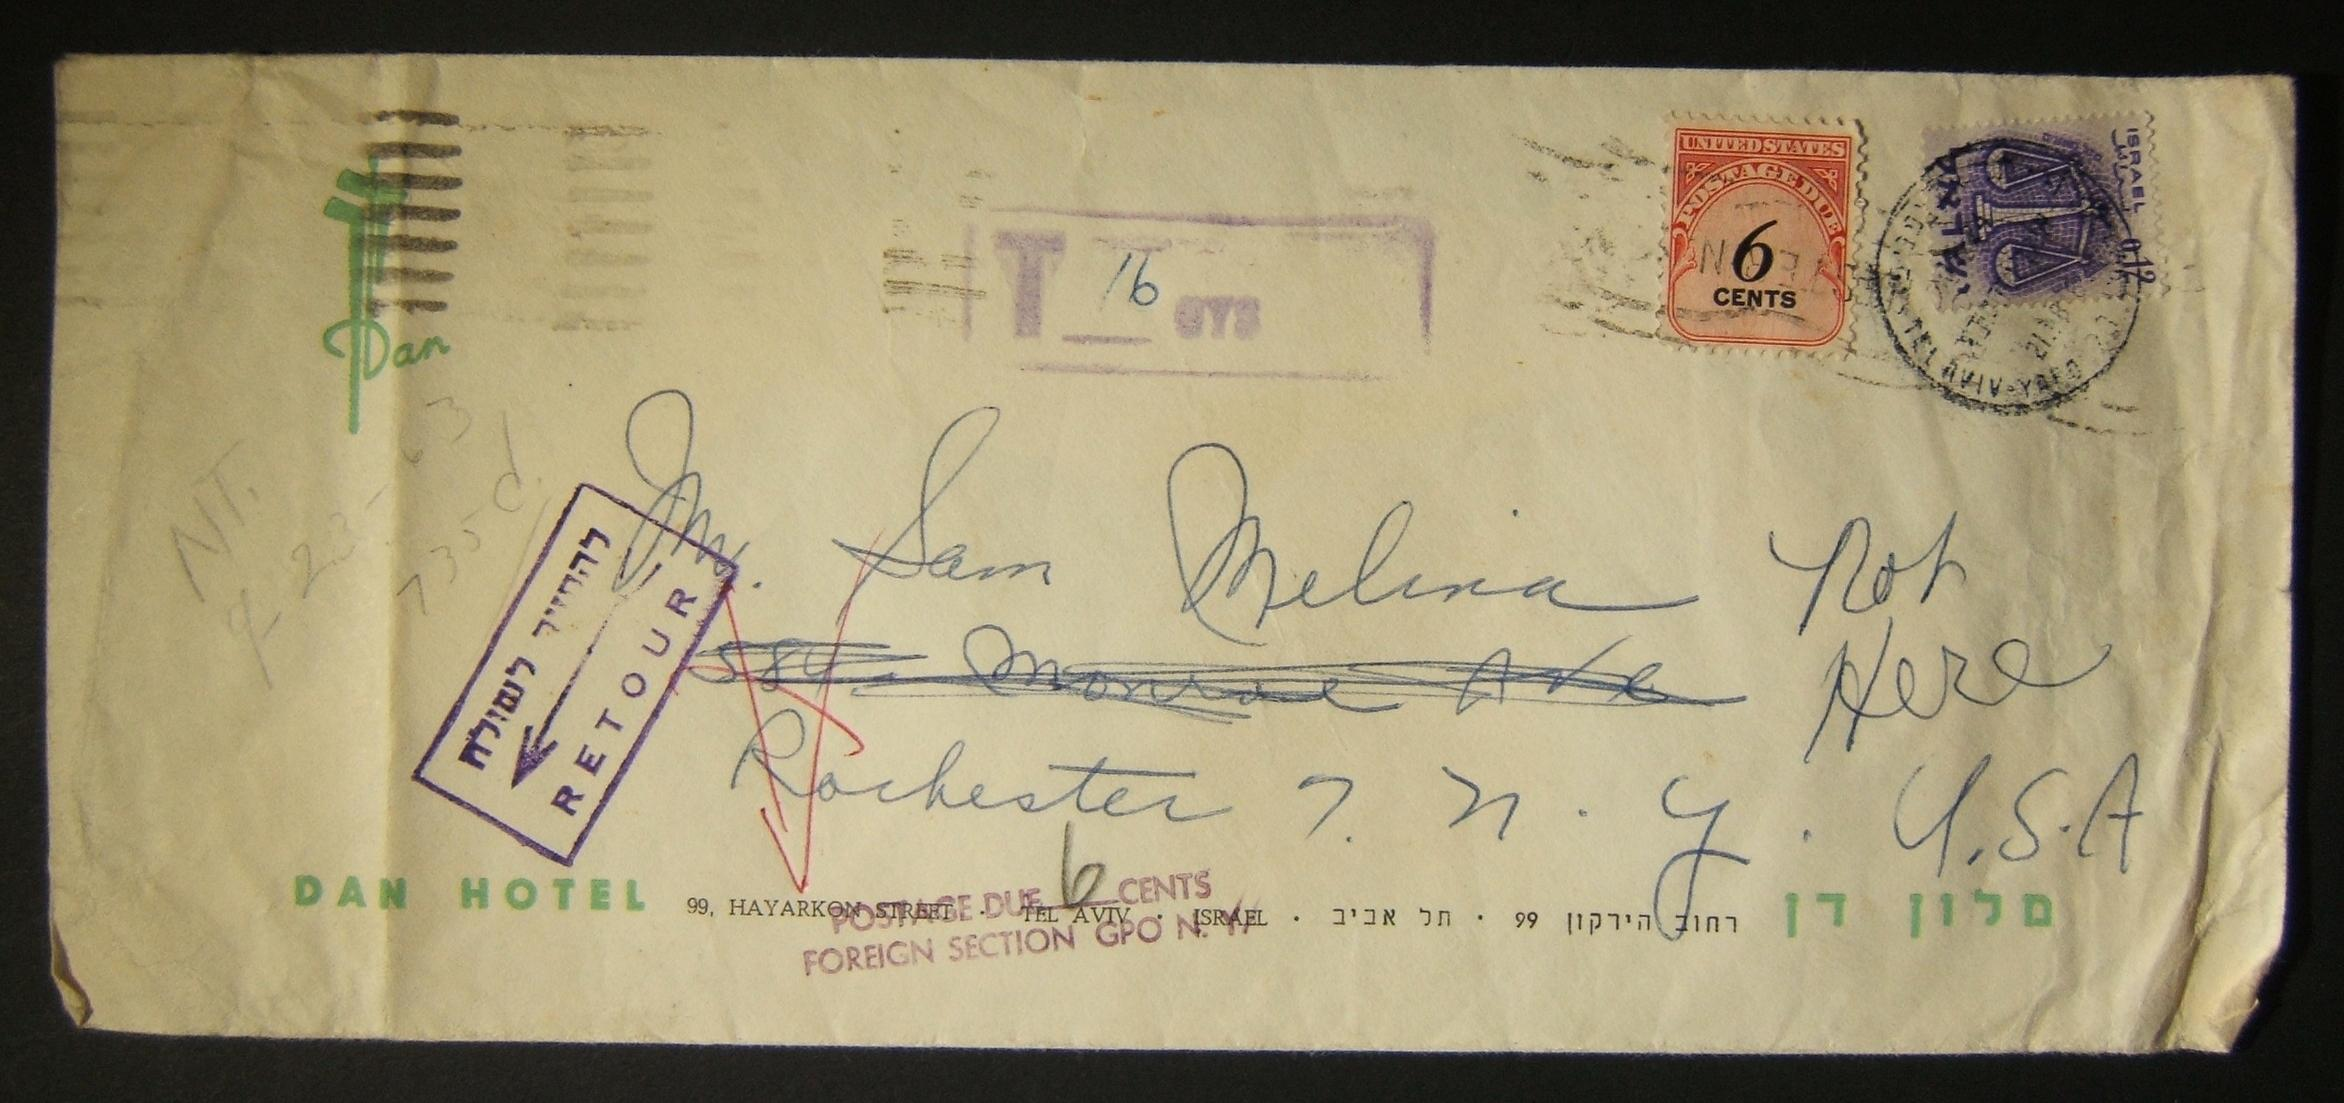 1963 returned taxed mail: 21-8-1963 surface mailed Dan Hotel stationary cover ex TEL AVIV to ROCHESTER, NY franked 0.12L instead of 0.25L as per the SU-13 period rate, and taxed 6c